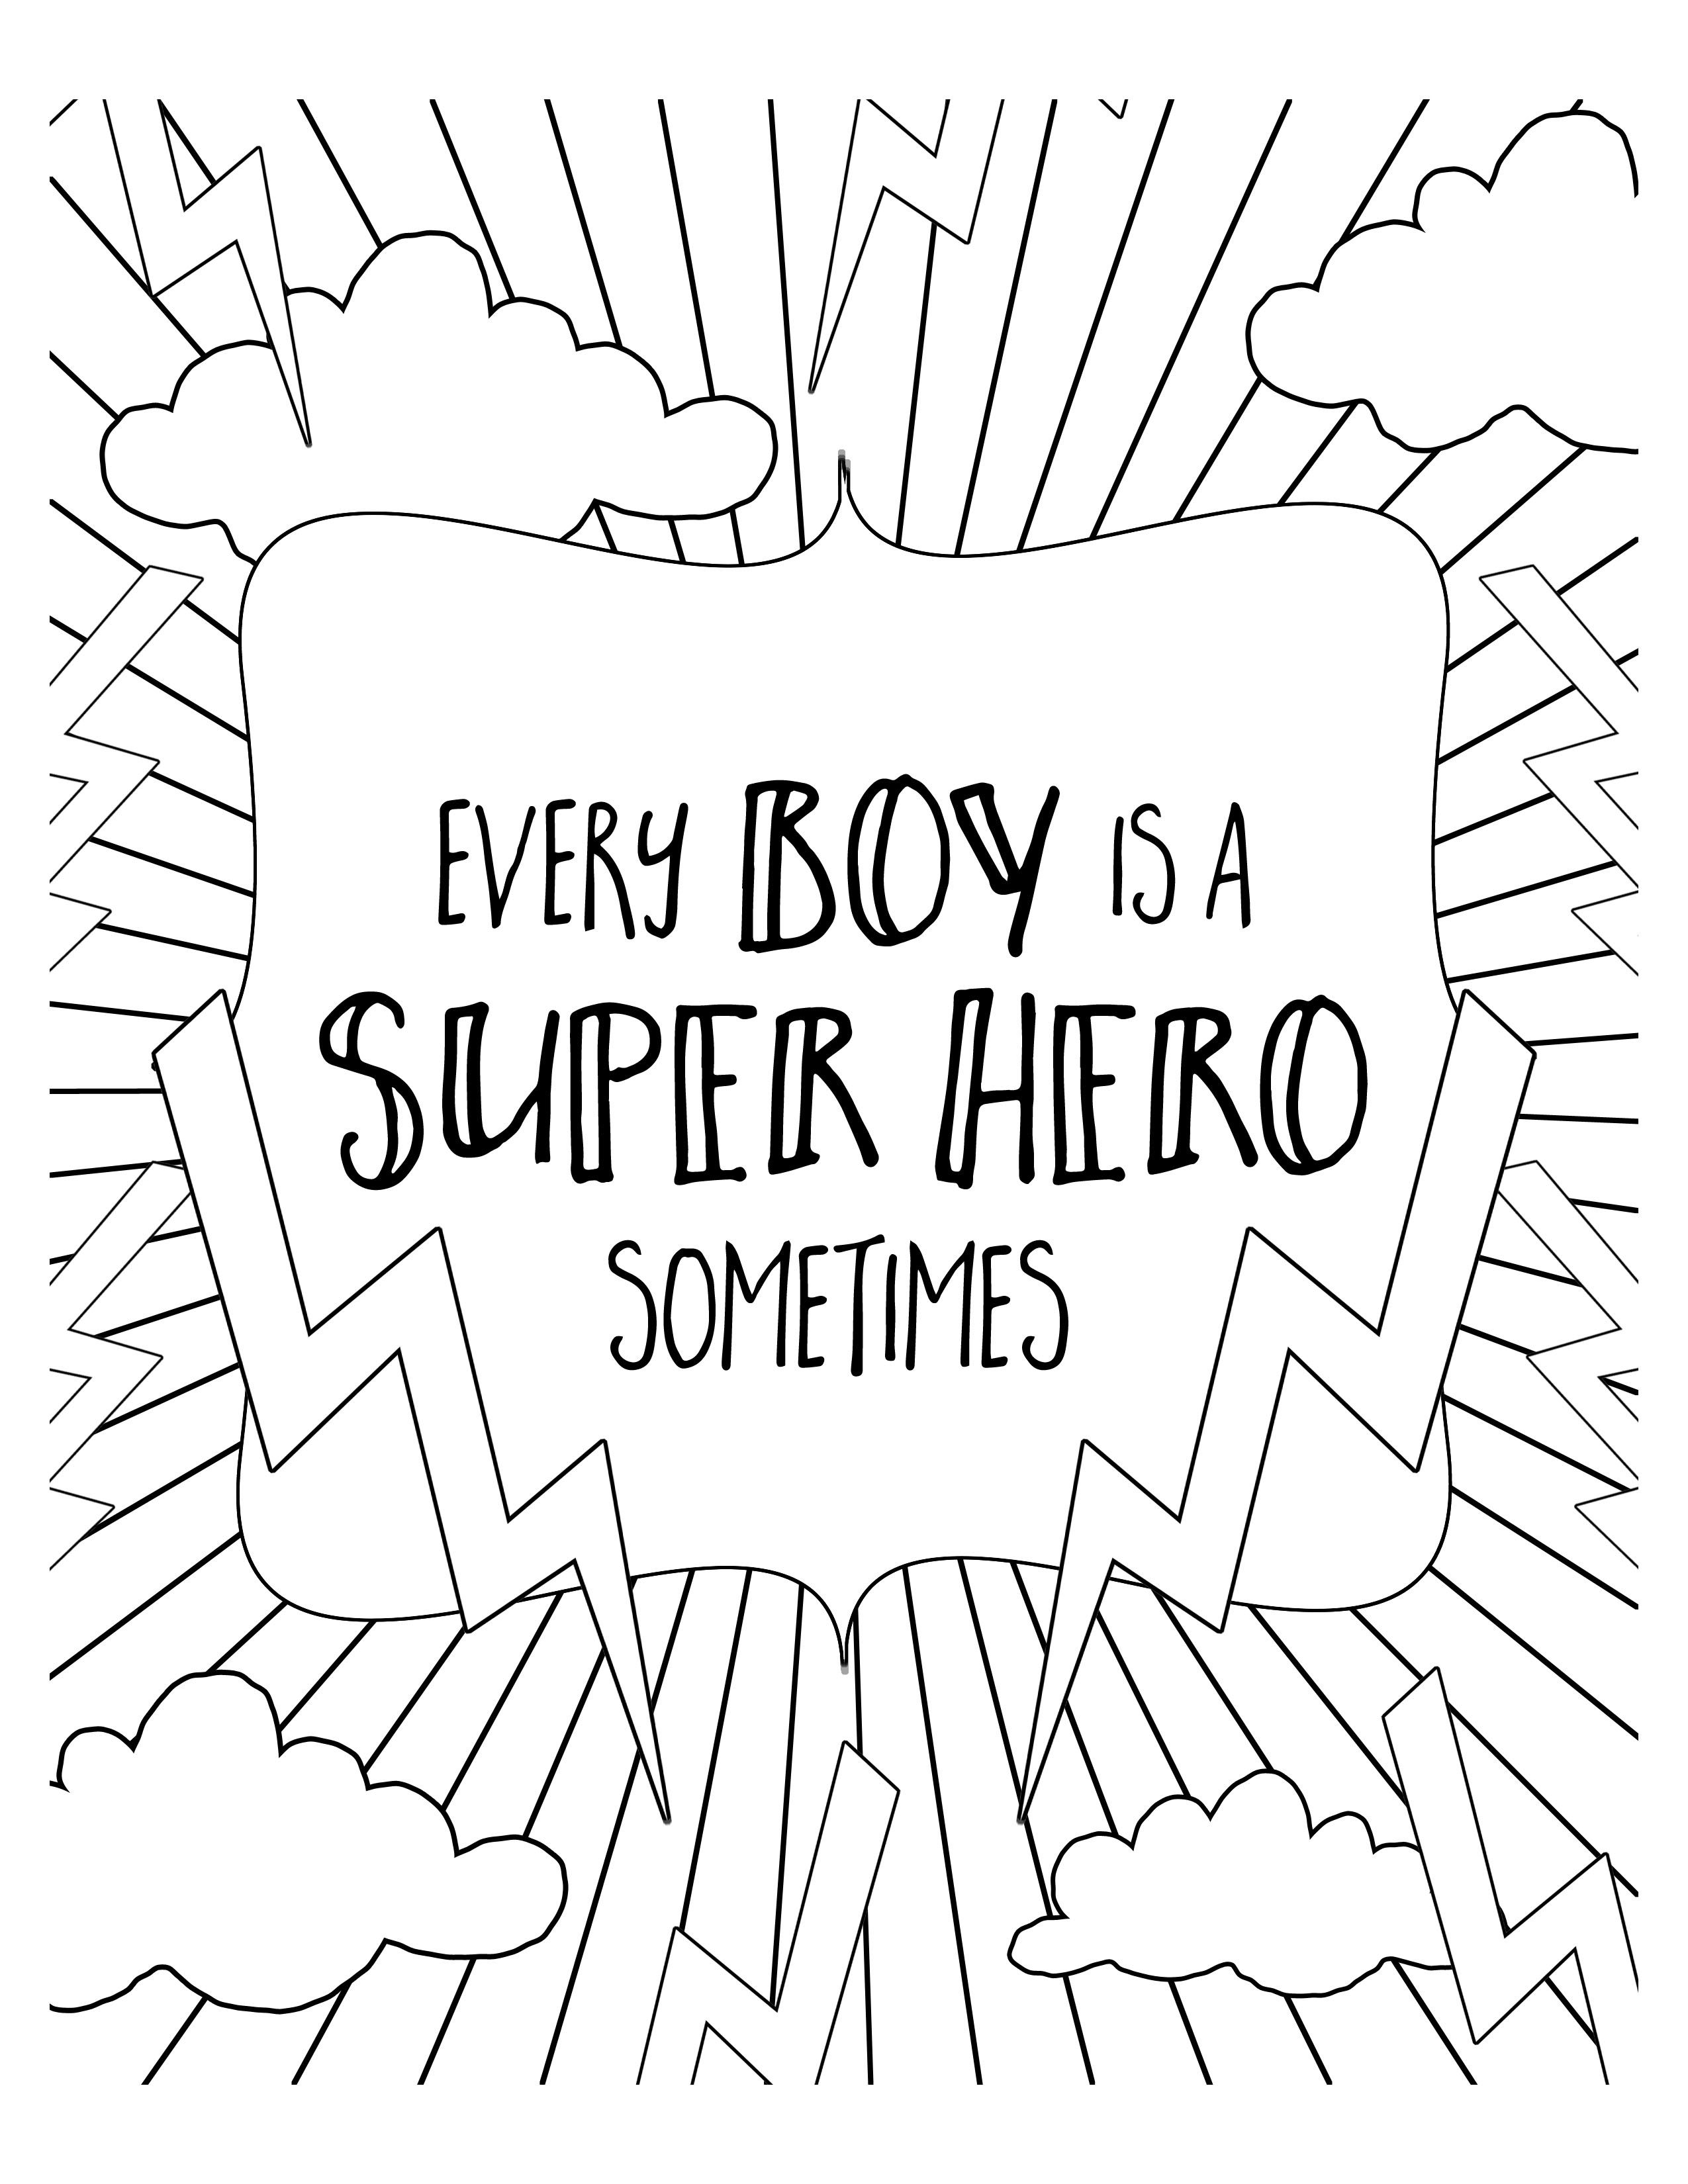 Free Super Hero Coloring Pages Let S Diy It All With Kritsyn Merkley Superhero Coloring Pages New Year Coloring Pages Coloring Pages For Boys